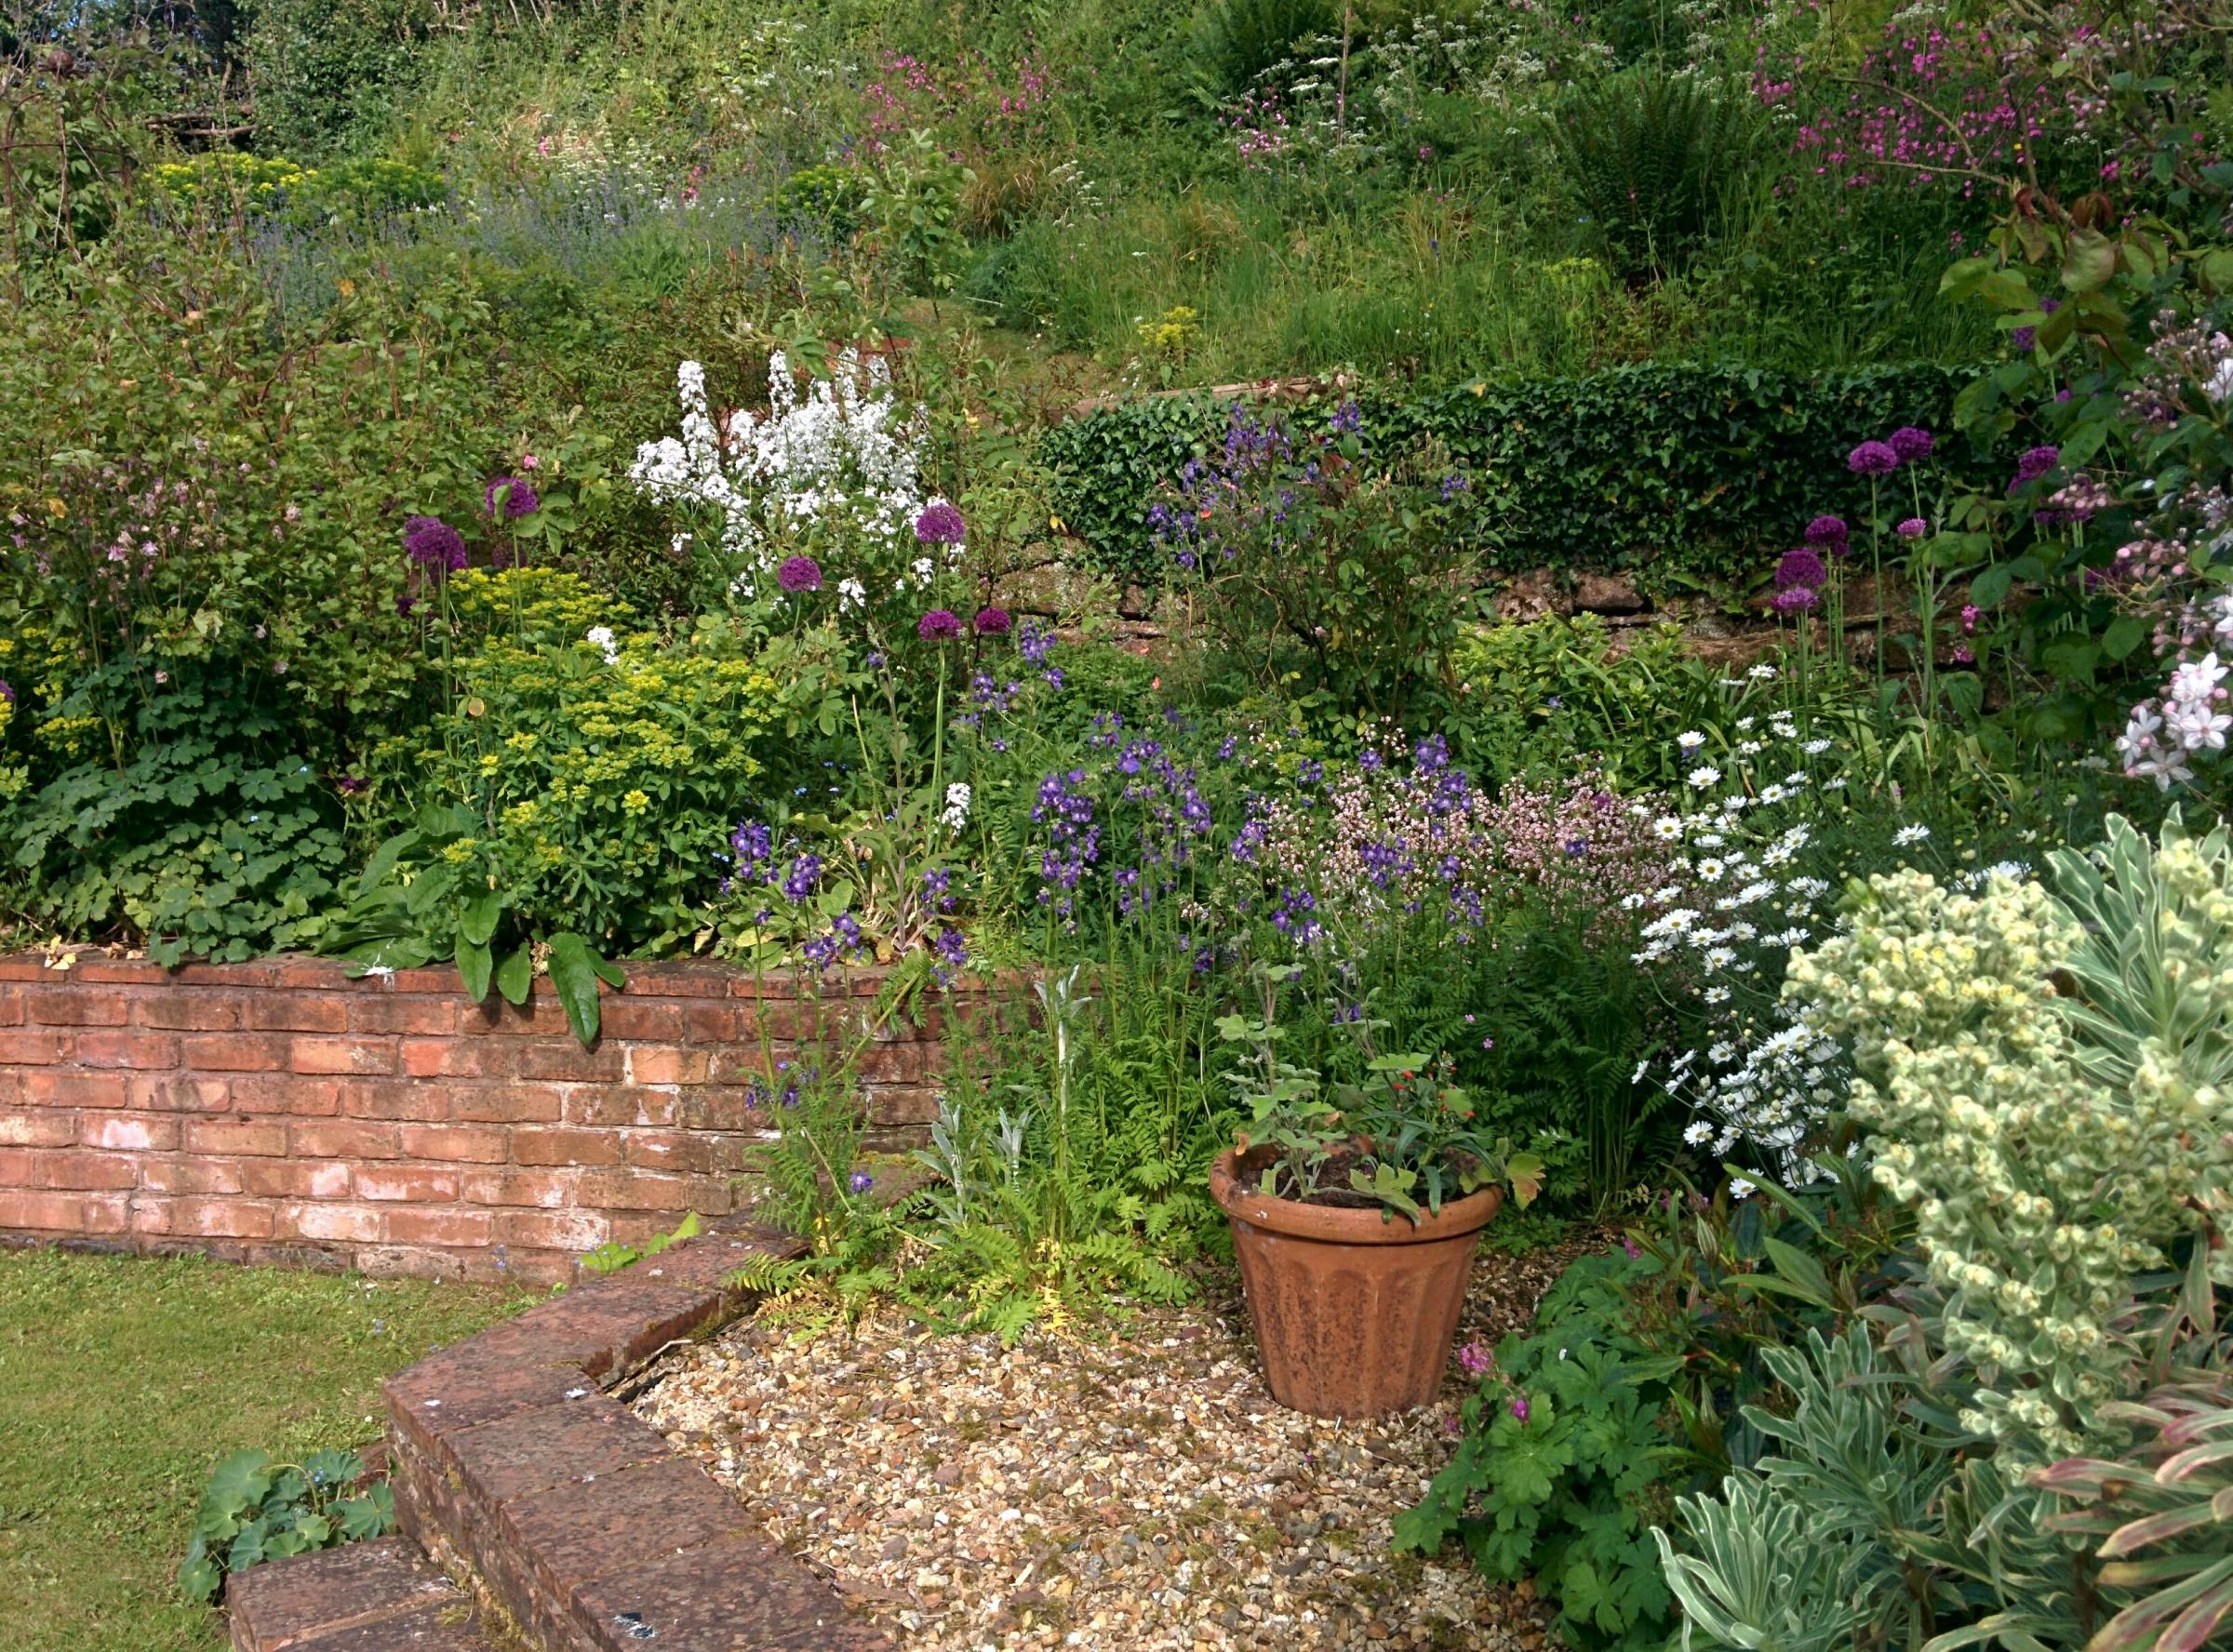 St Margaret's Hospice Open Gardens – Westleigh Farm, Westleigh, Lydeard St Lawrence.